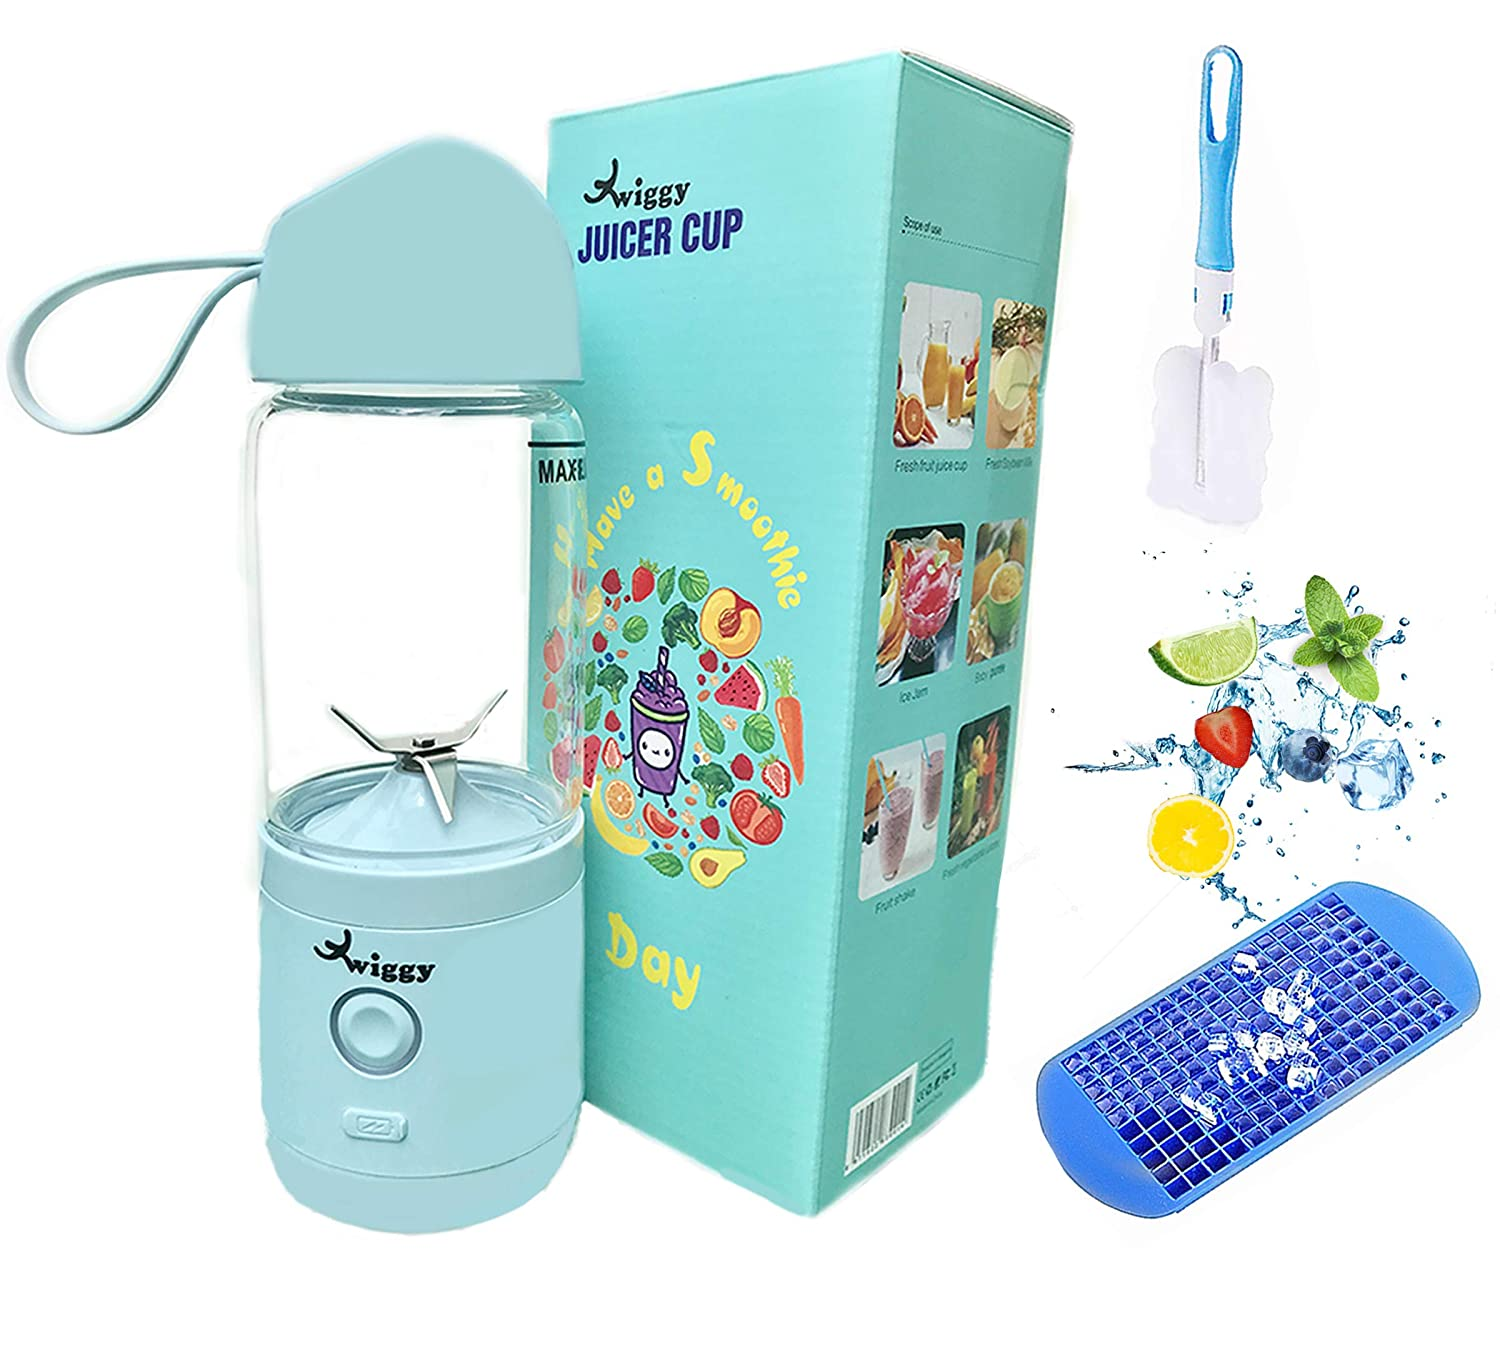 Twiggy Smoothie Blender For Single Served Personal USB Rechargeable Portable Blender For Shakes and Smoothies Travel Glass Smoothie Bottle Juicer Cup Made from high grade 304 stainless steel 4 blades Rechargeable 4000mAh batteries Powerful motor 25000 rpm Bigger quantity 550ml Comes with detachable brush and silicone ice tray BPA FREE